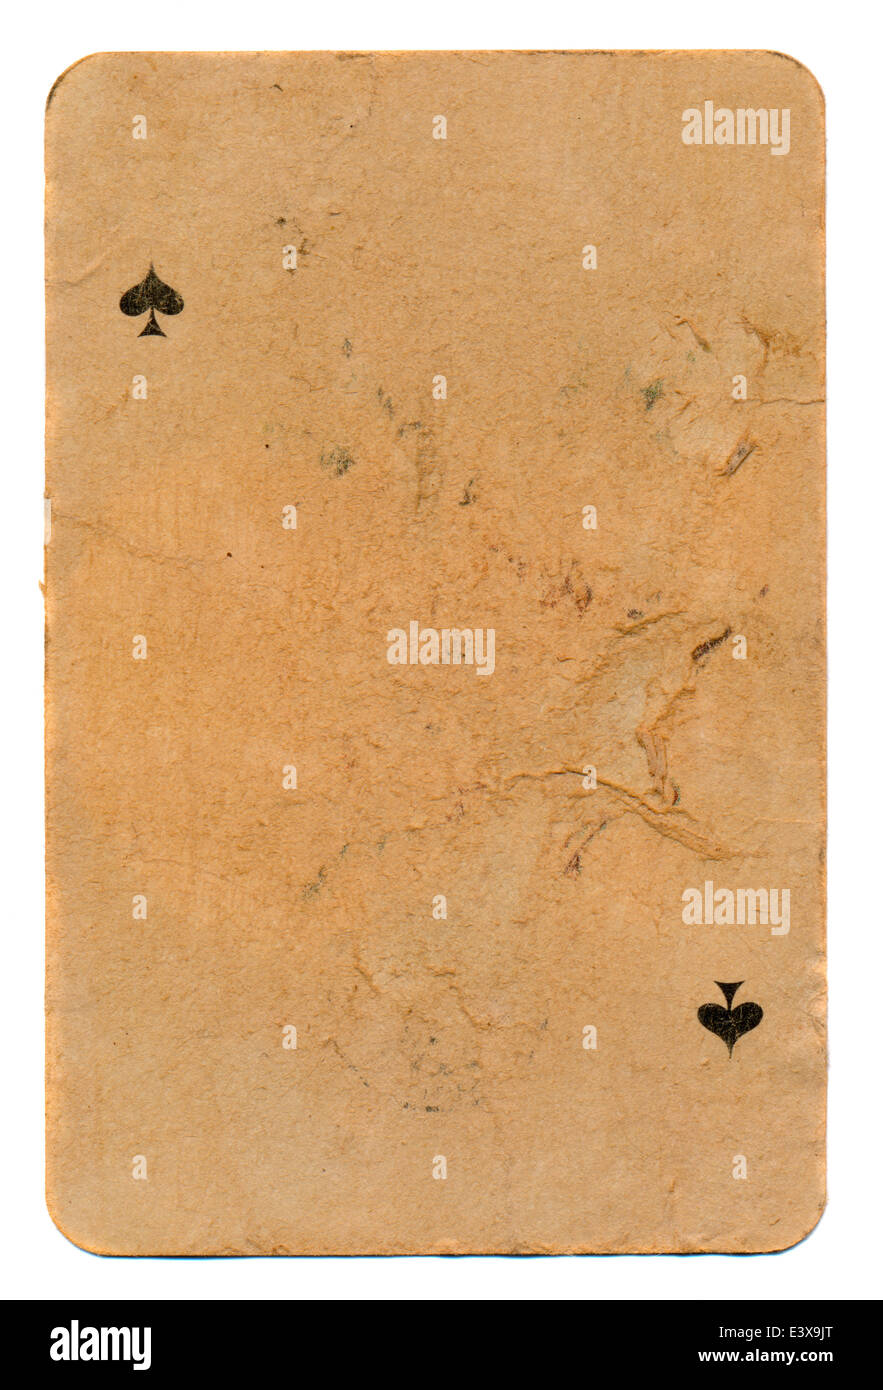 ancient grunge playing card of spades paper background - Stock Image